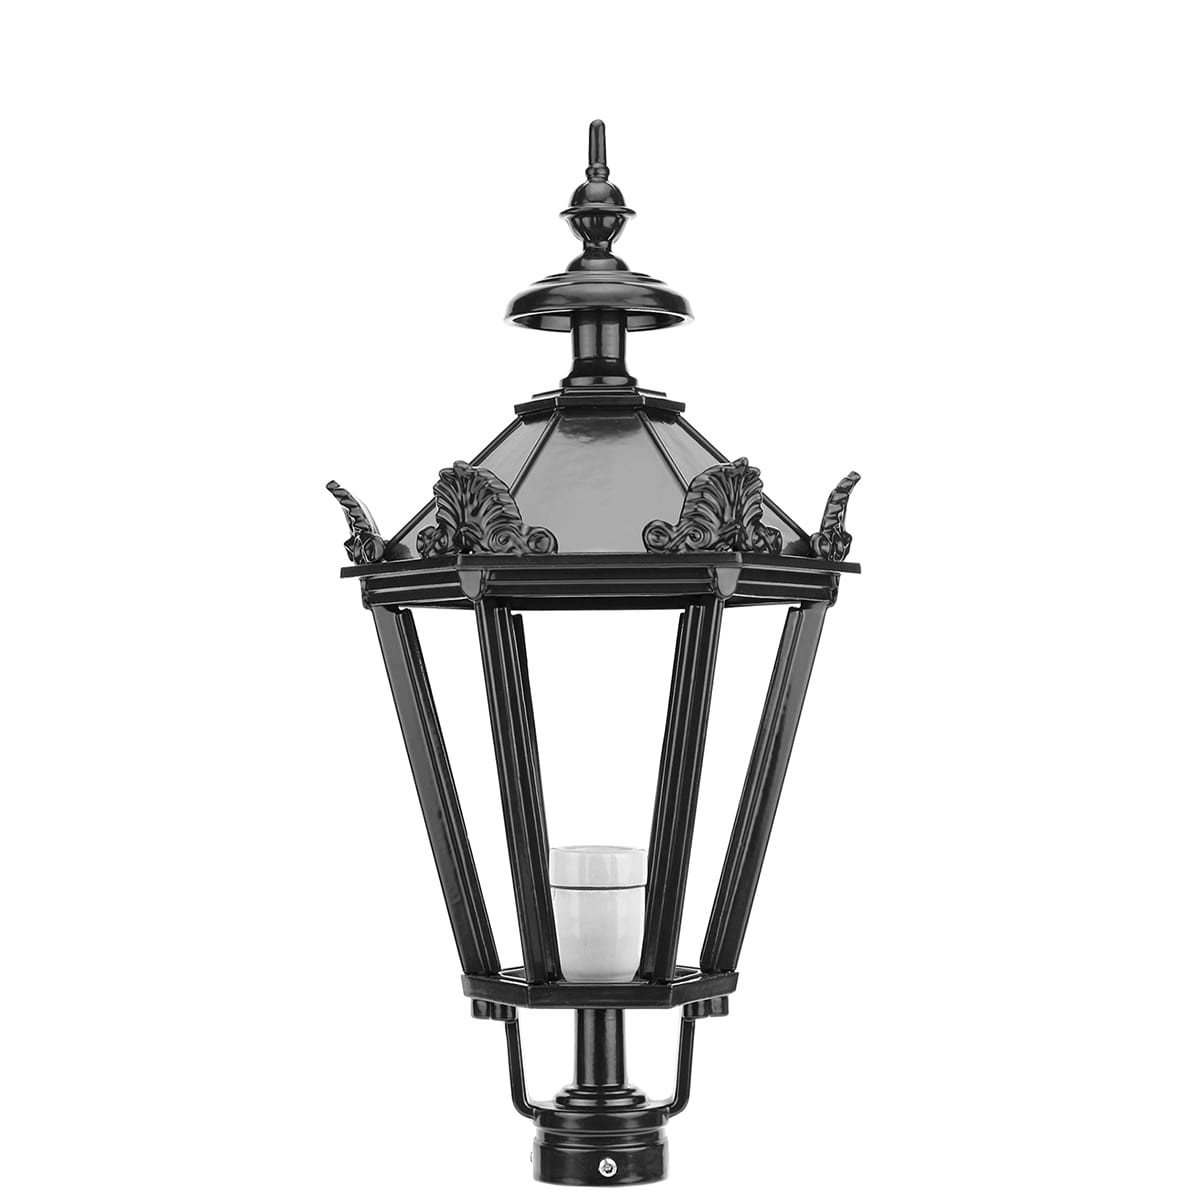 Outdoor lighting Classic Rural Loose lantern shade K12+ with crowns - 63 cm